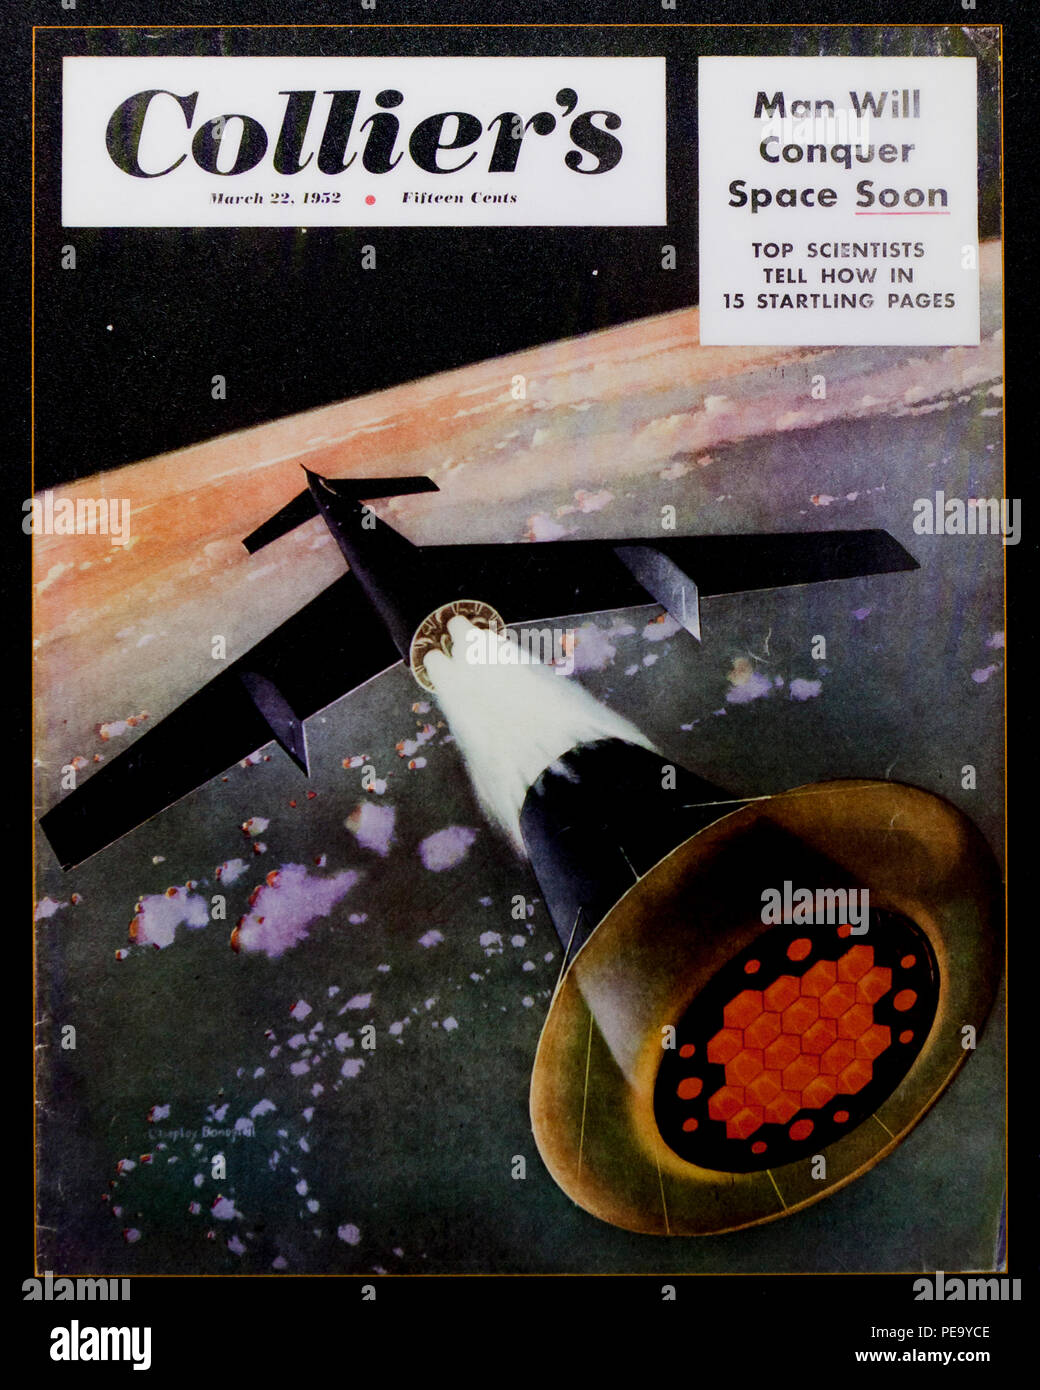 Collier's magazine cover displaying concept spaceplane (spaceship) and spaceflight, circa March 1952 - USA - Stock Image